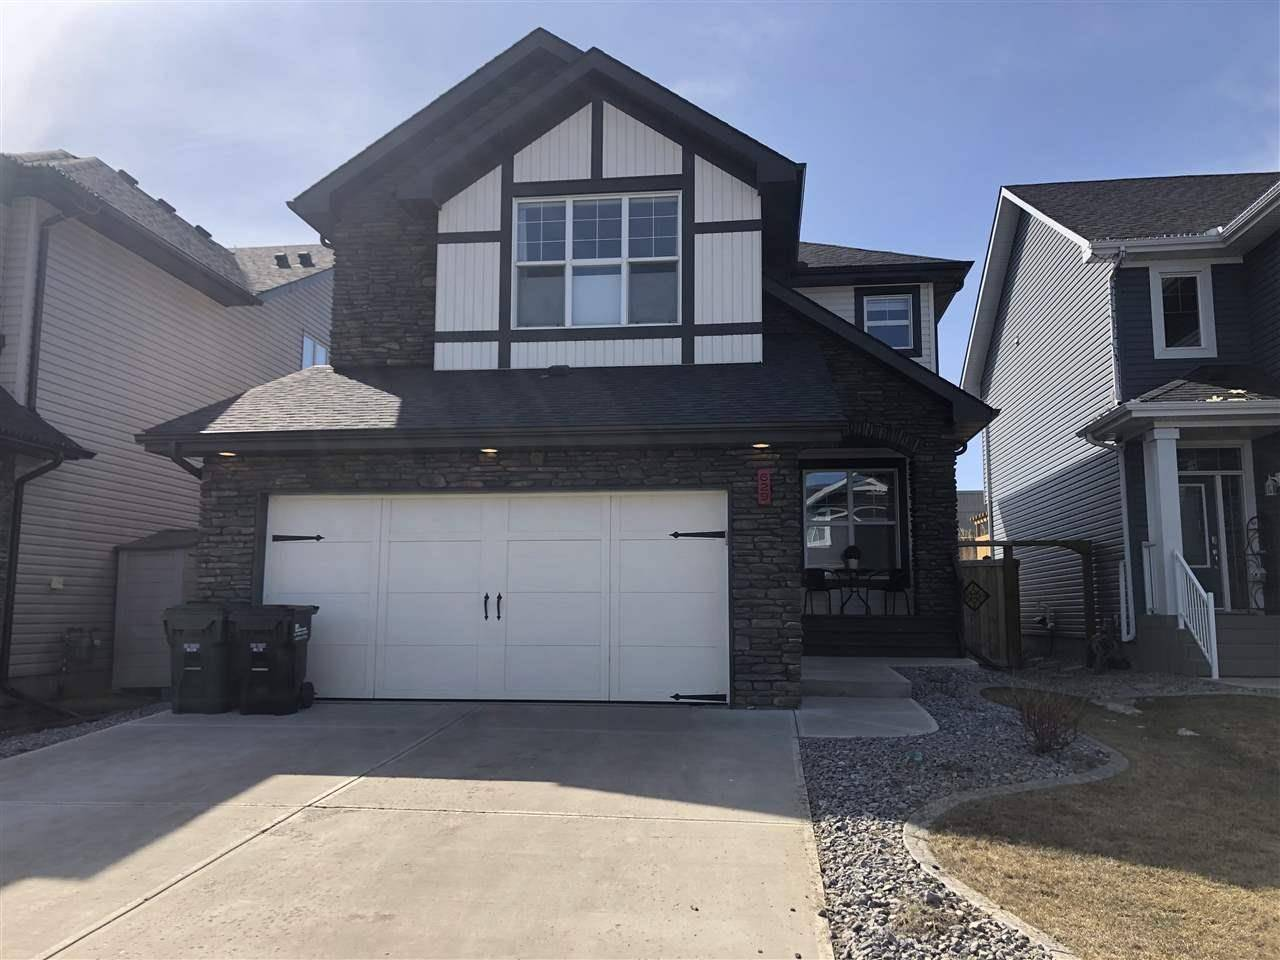 House for sale at 629 Armitage Cres Sherwood Park Alberta - MLS: E4188072